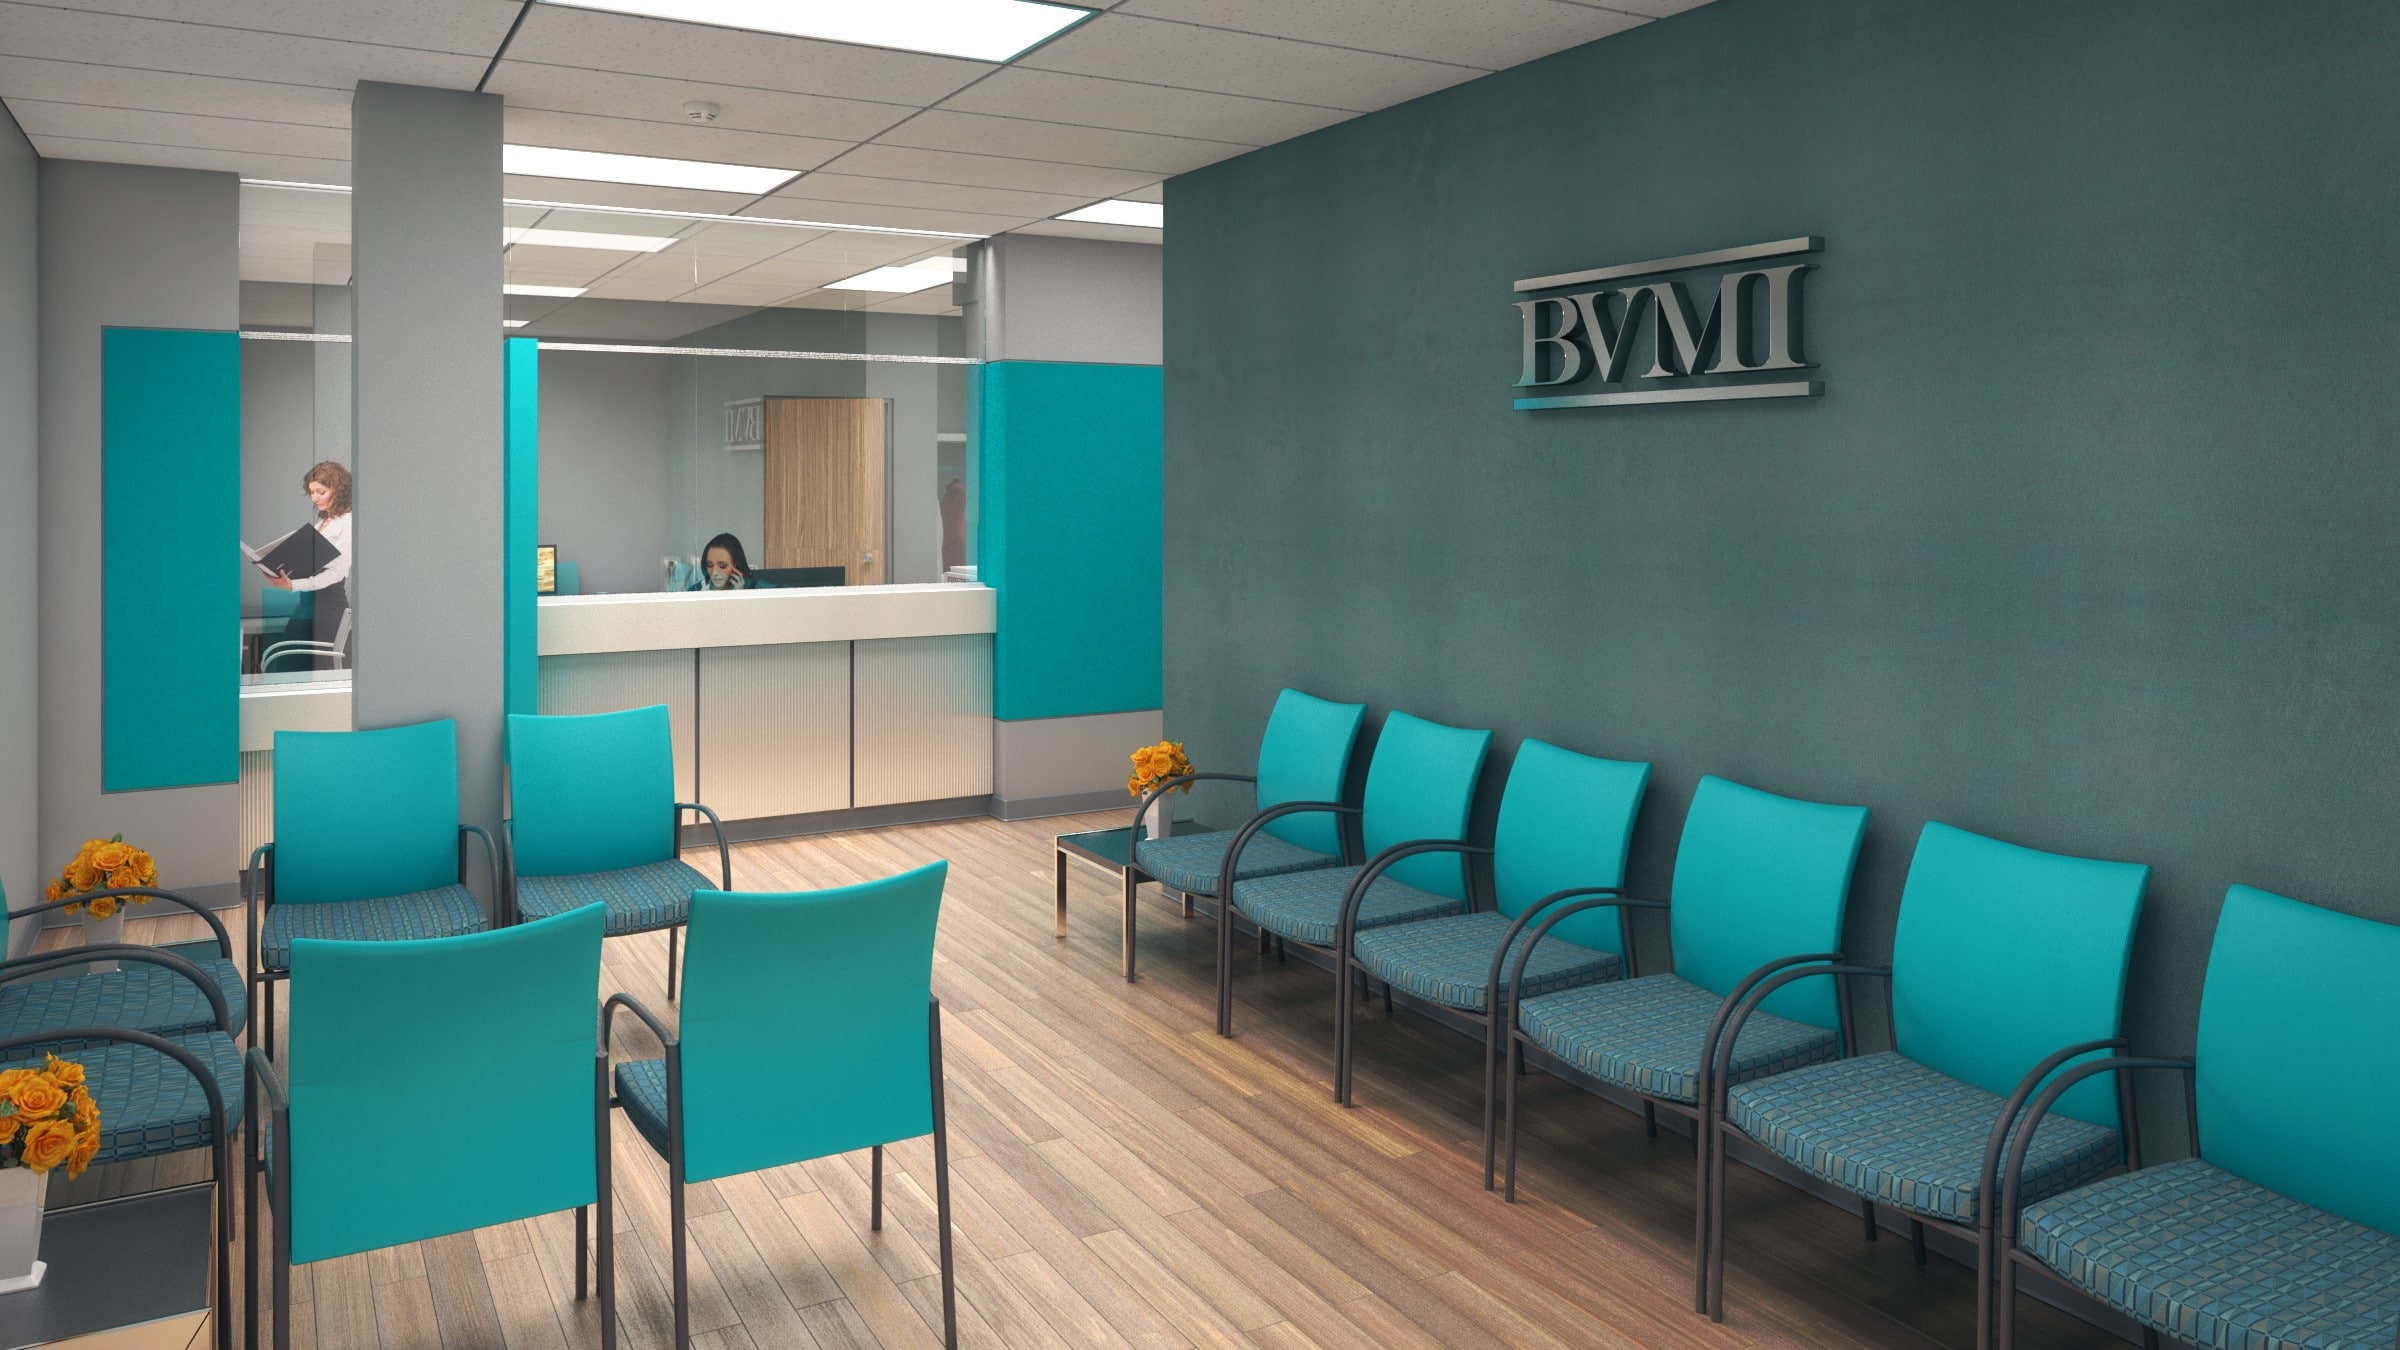 BVMI Reception Area